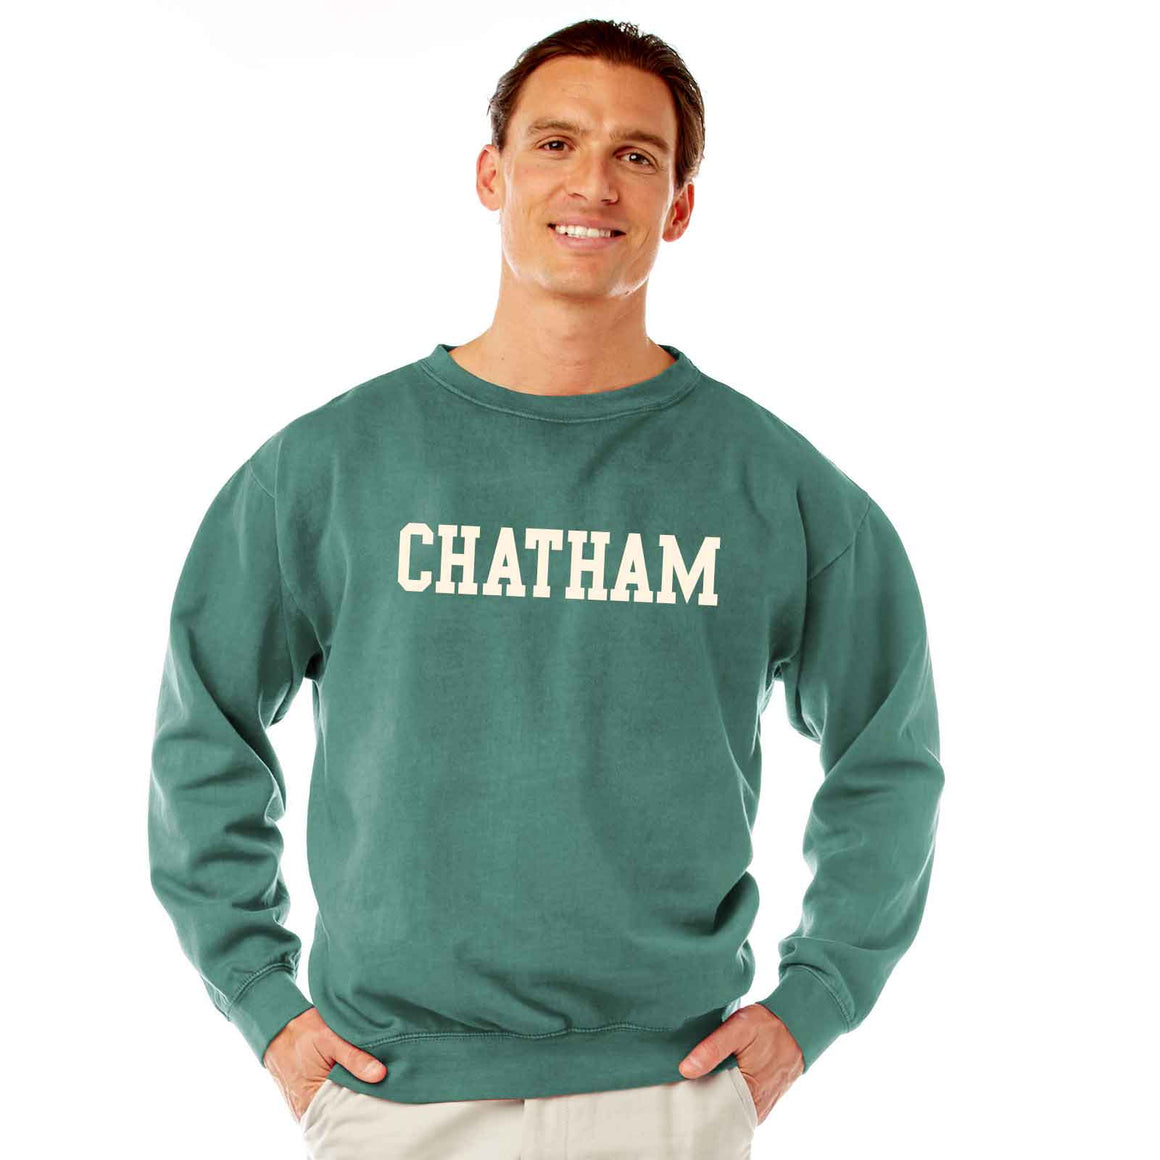 Men's Willow Chatham Crew Neck Sweatshirt